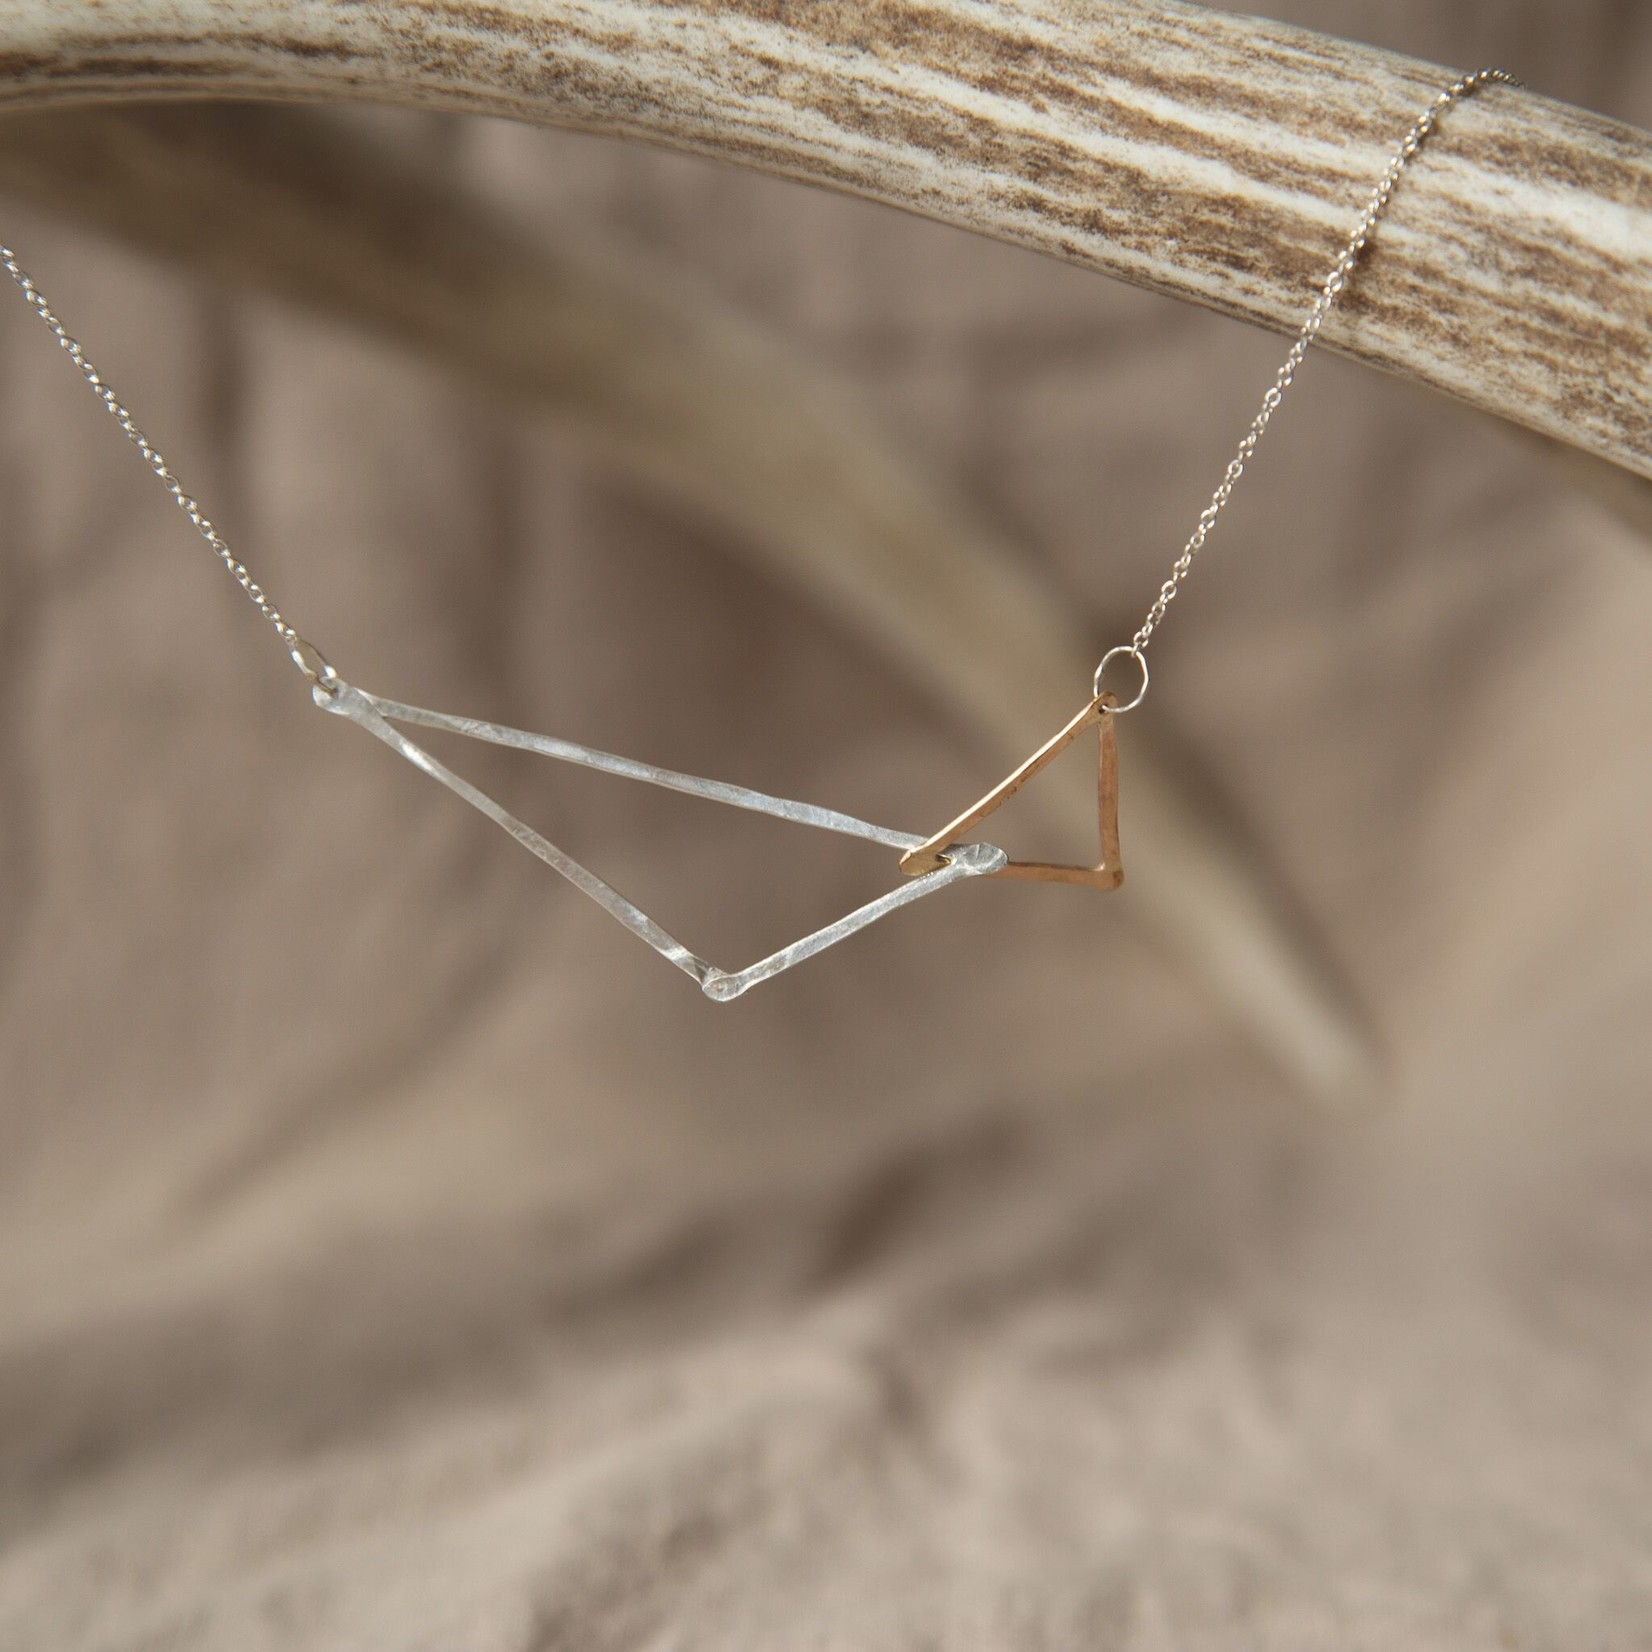 Lonewolf Collective Lonewolf Collective - Oblique Necklace (14K Gold Fill & Silver)